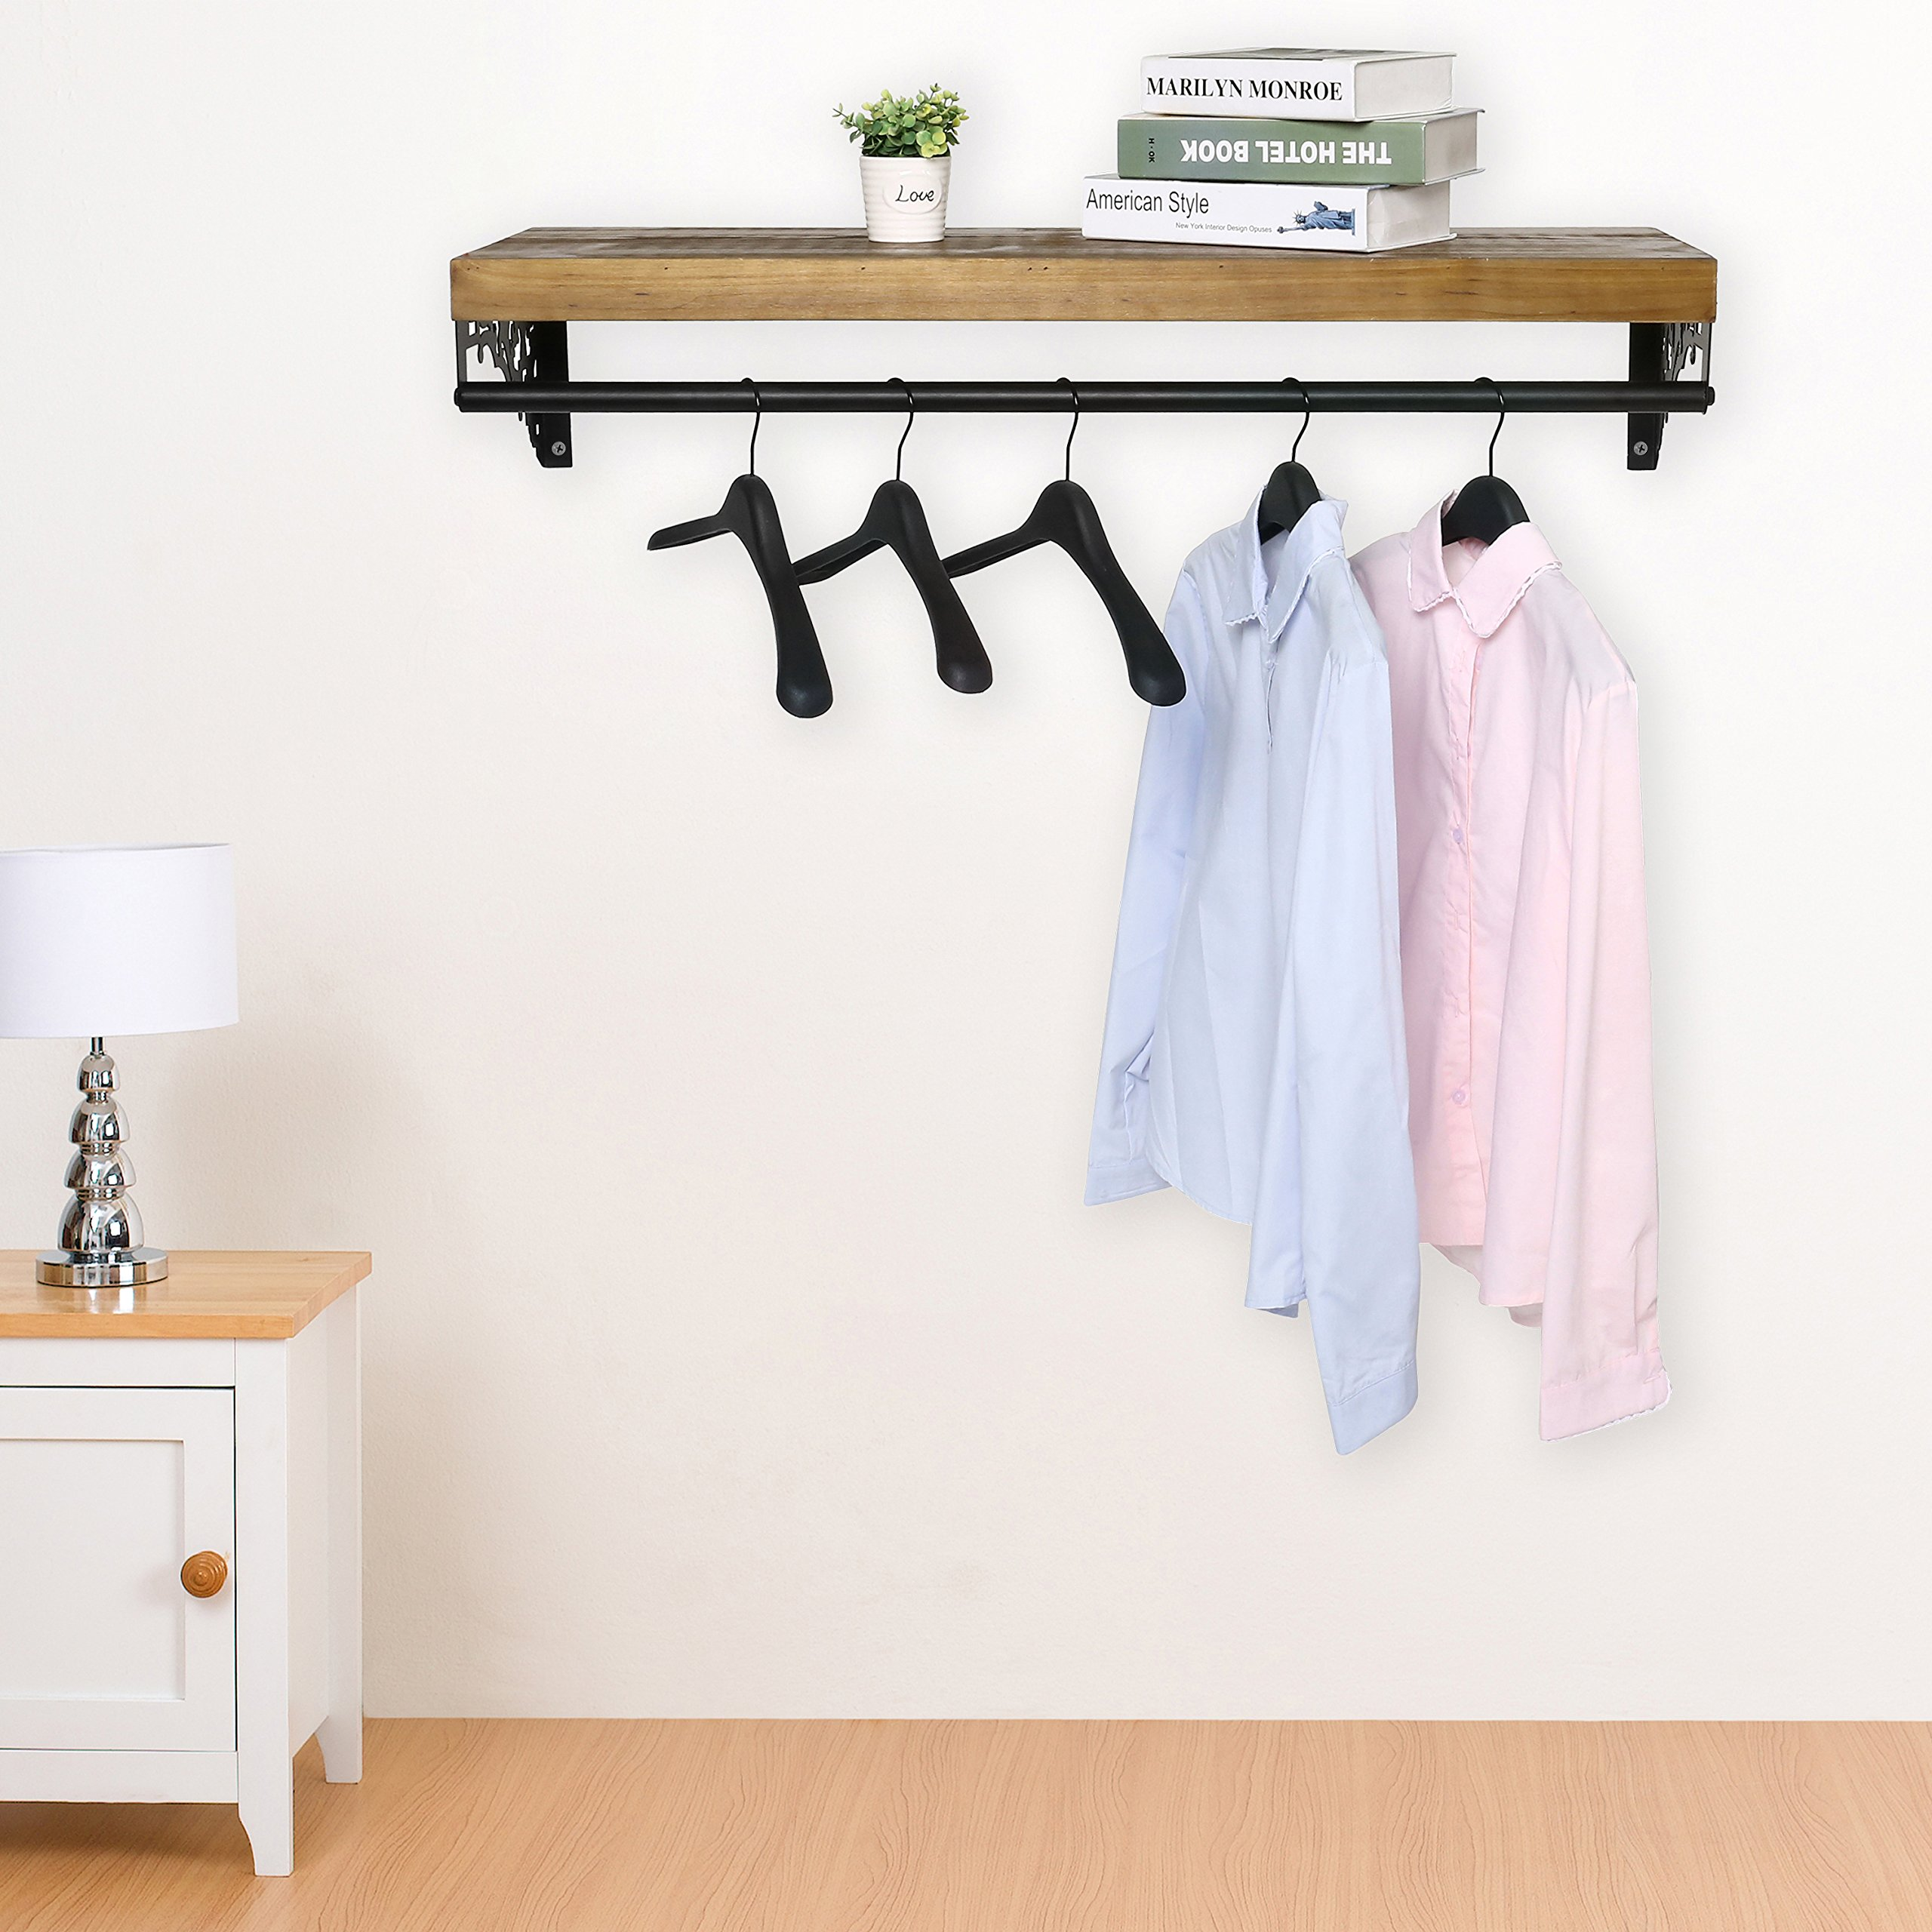 expanding from racks clothes duo garment rack box metal storage